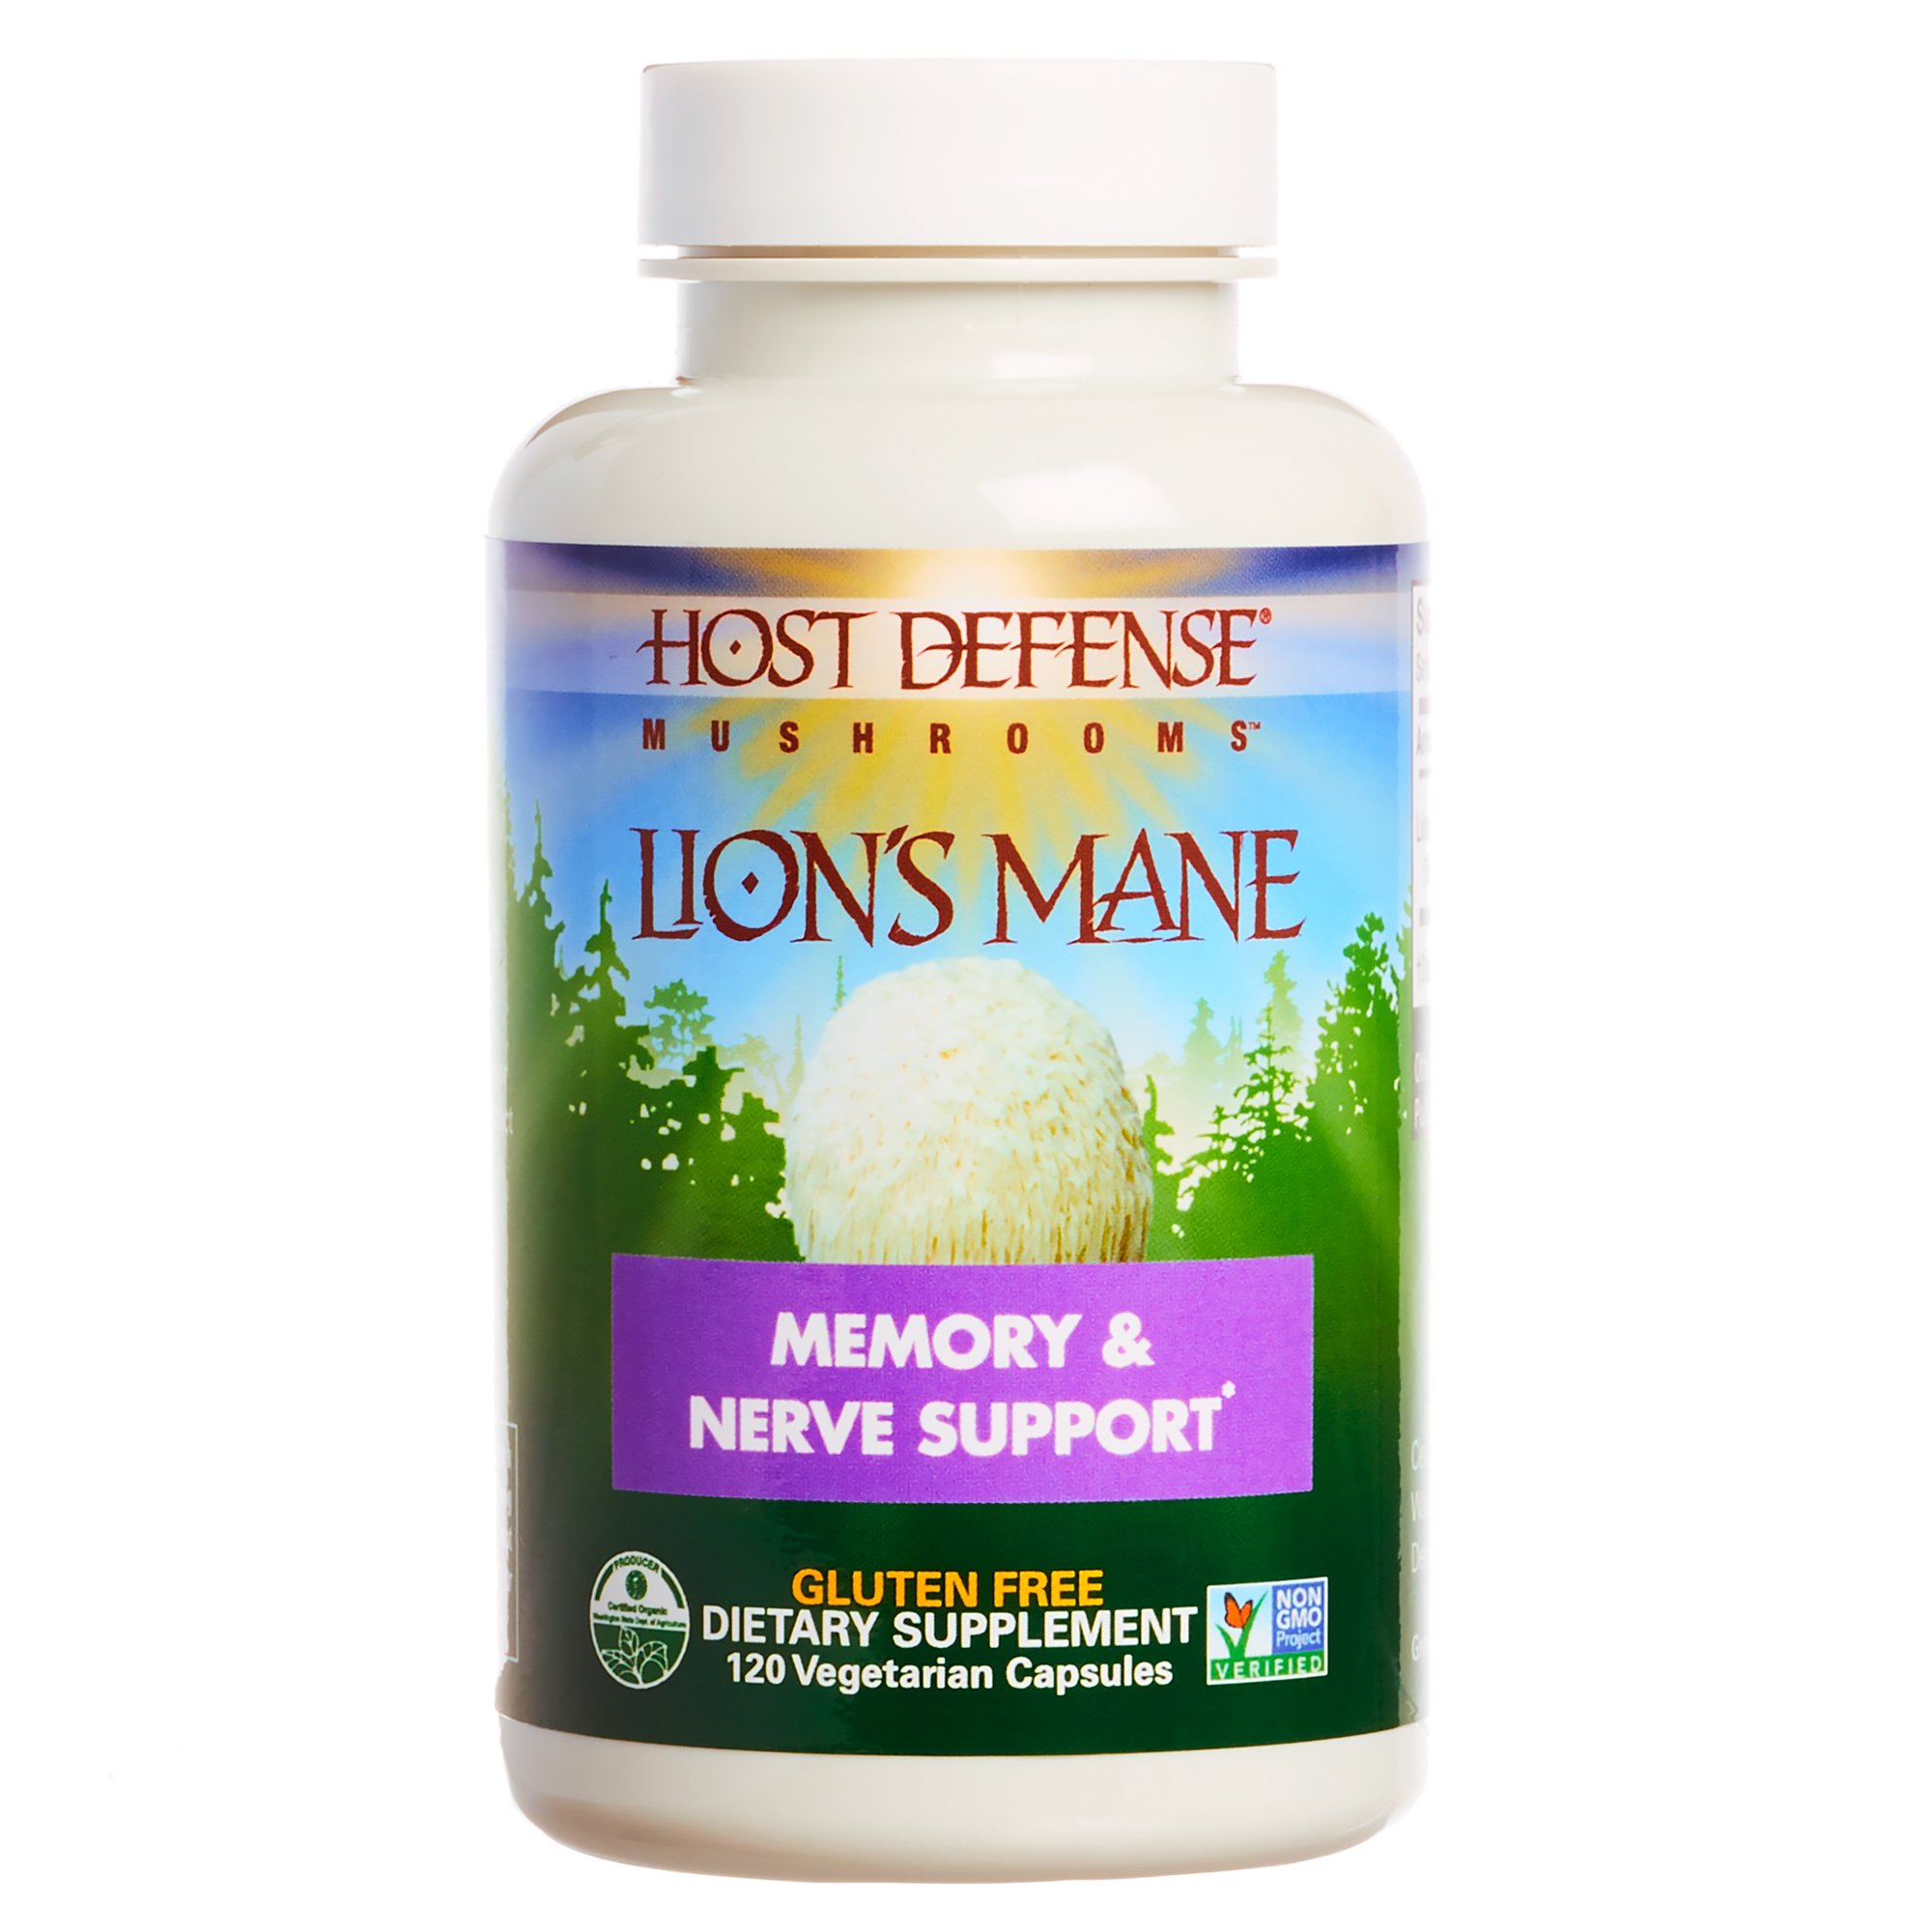 Host Defense - Lion's Mane Capsules, Mushroom Support for Memory & Nerves, 120 Count (FFP)